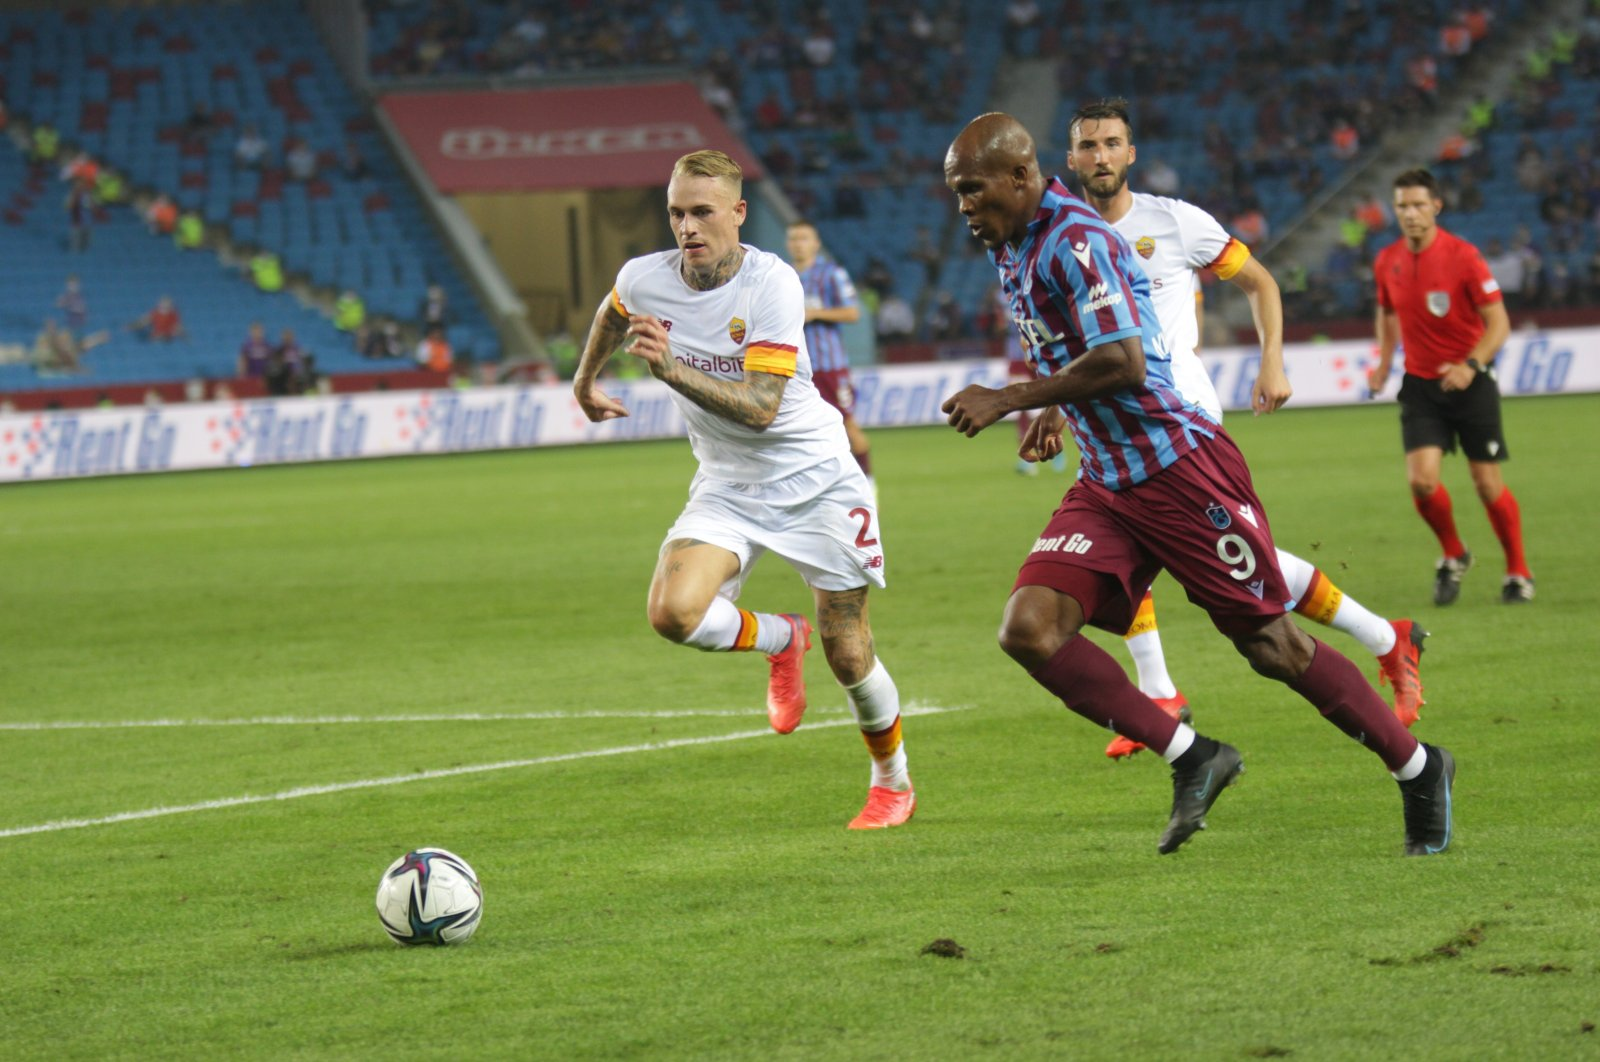 Trabzonspor and AS Roma players are seen in action at Şenol Güneş Sports Complex in Trabzon, Aug. 19, 2021. (IHA Photo)